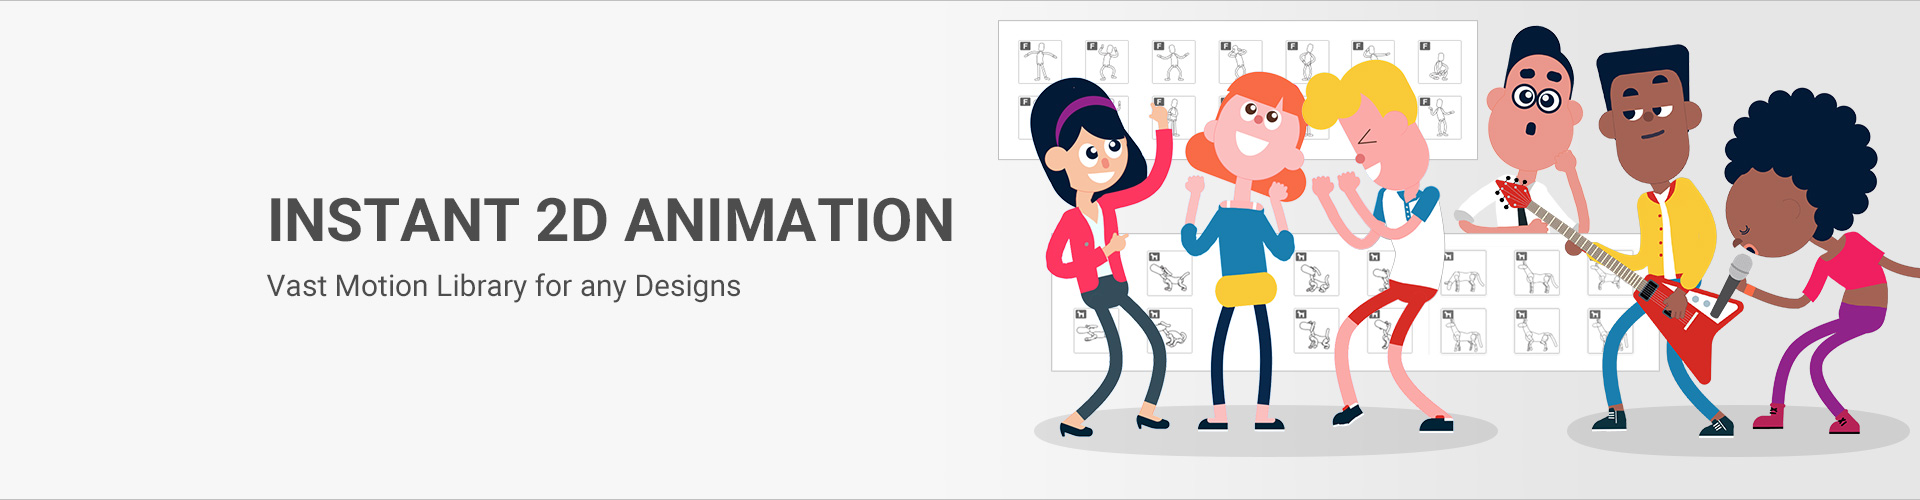 Cartoon Animator - the 2D animation software for character animation